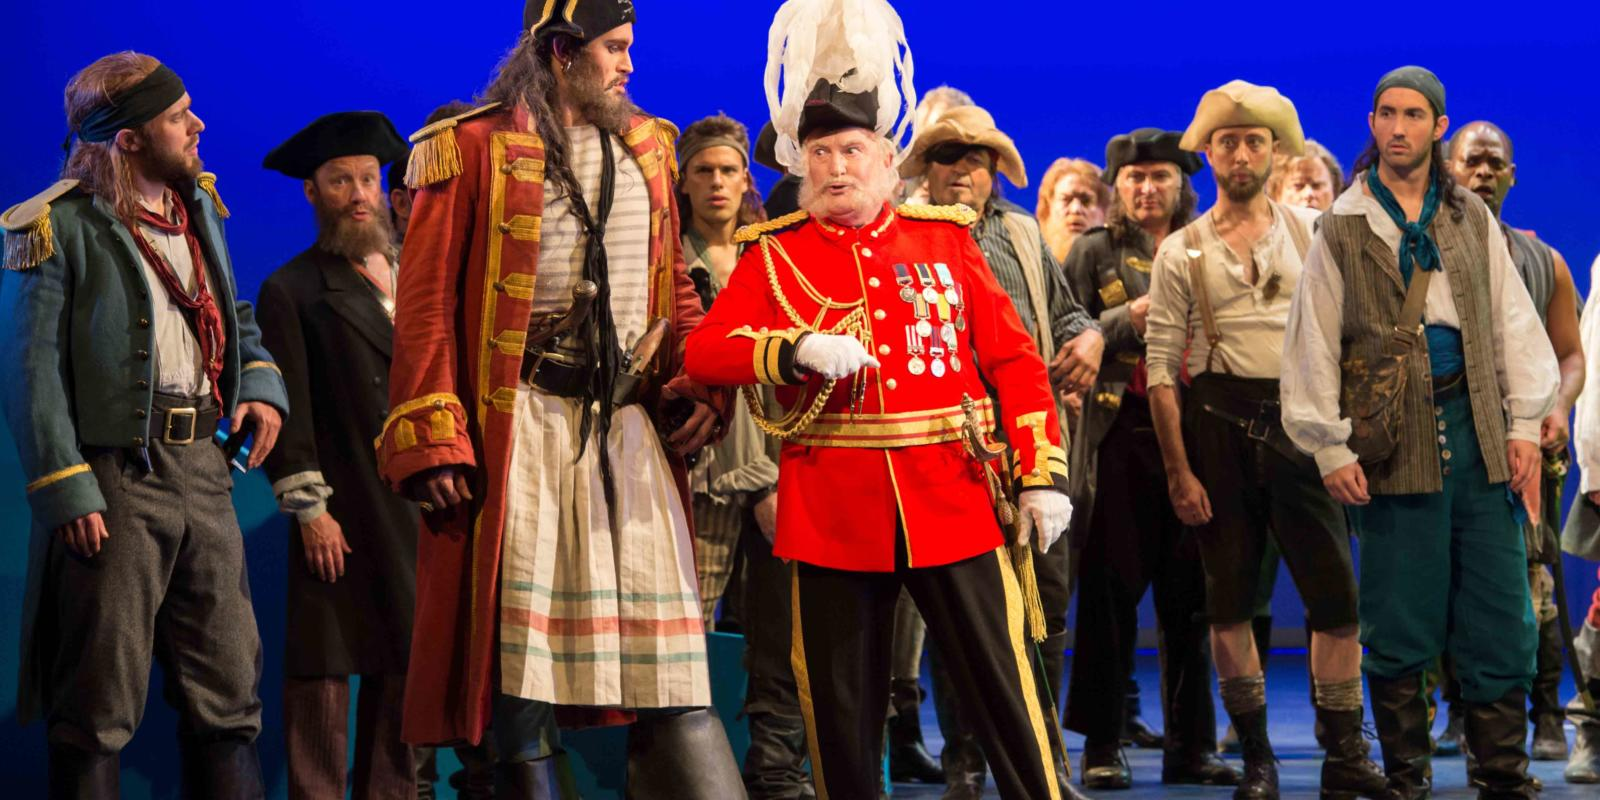 ENO's The Pirates of Penzance - Ashley Riches as The Pirate King and Andrew Shore as the Major-General. Photo by Tom Bowles